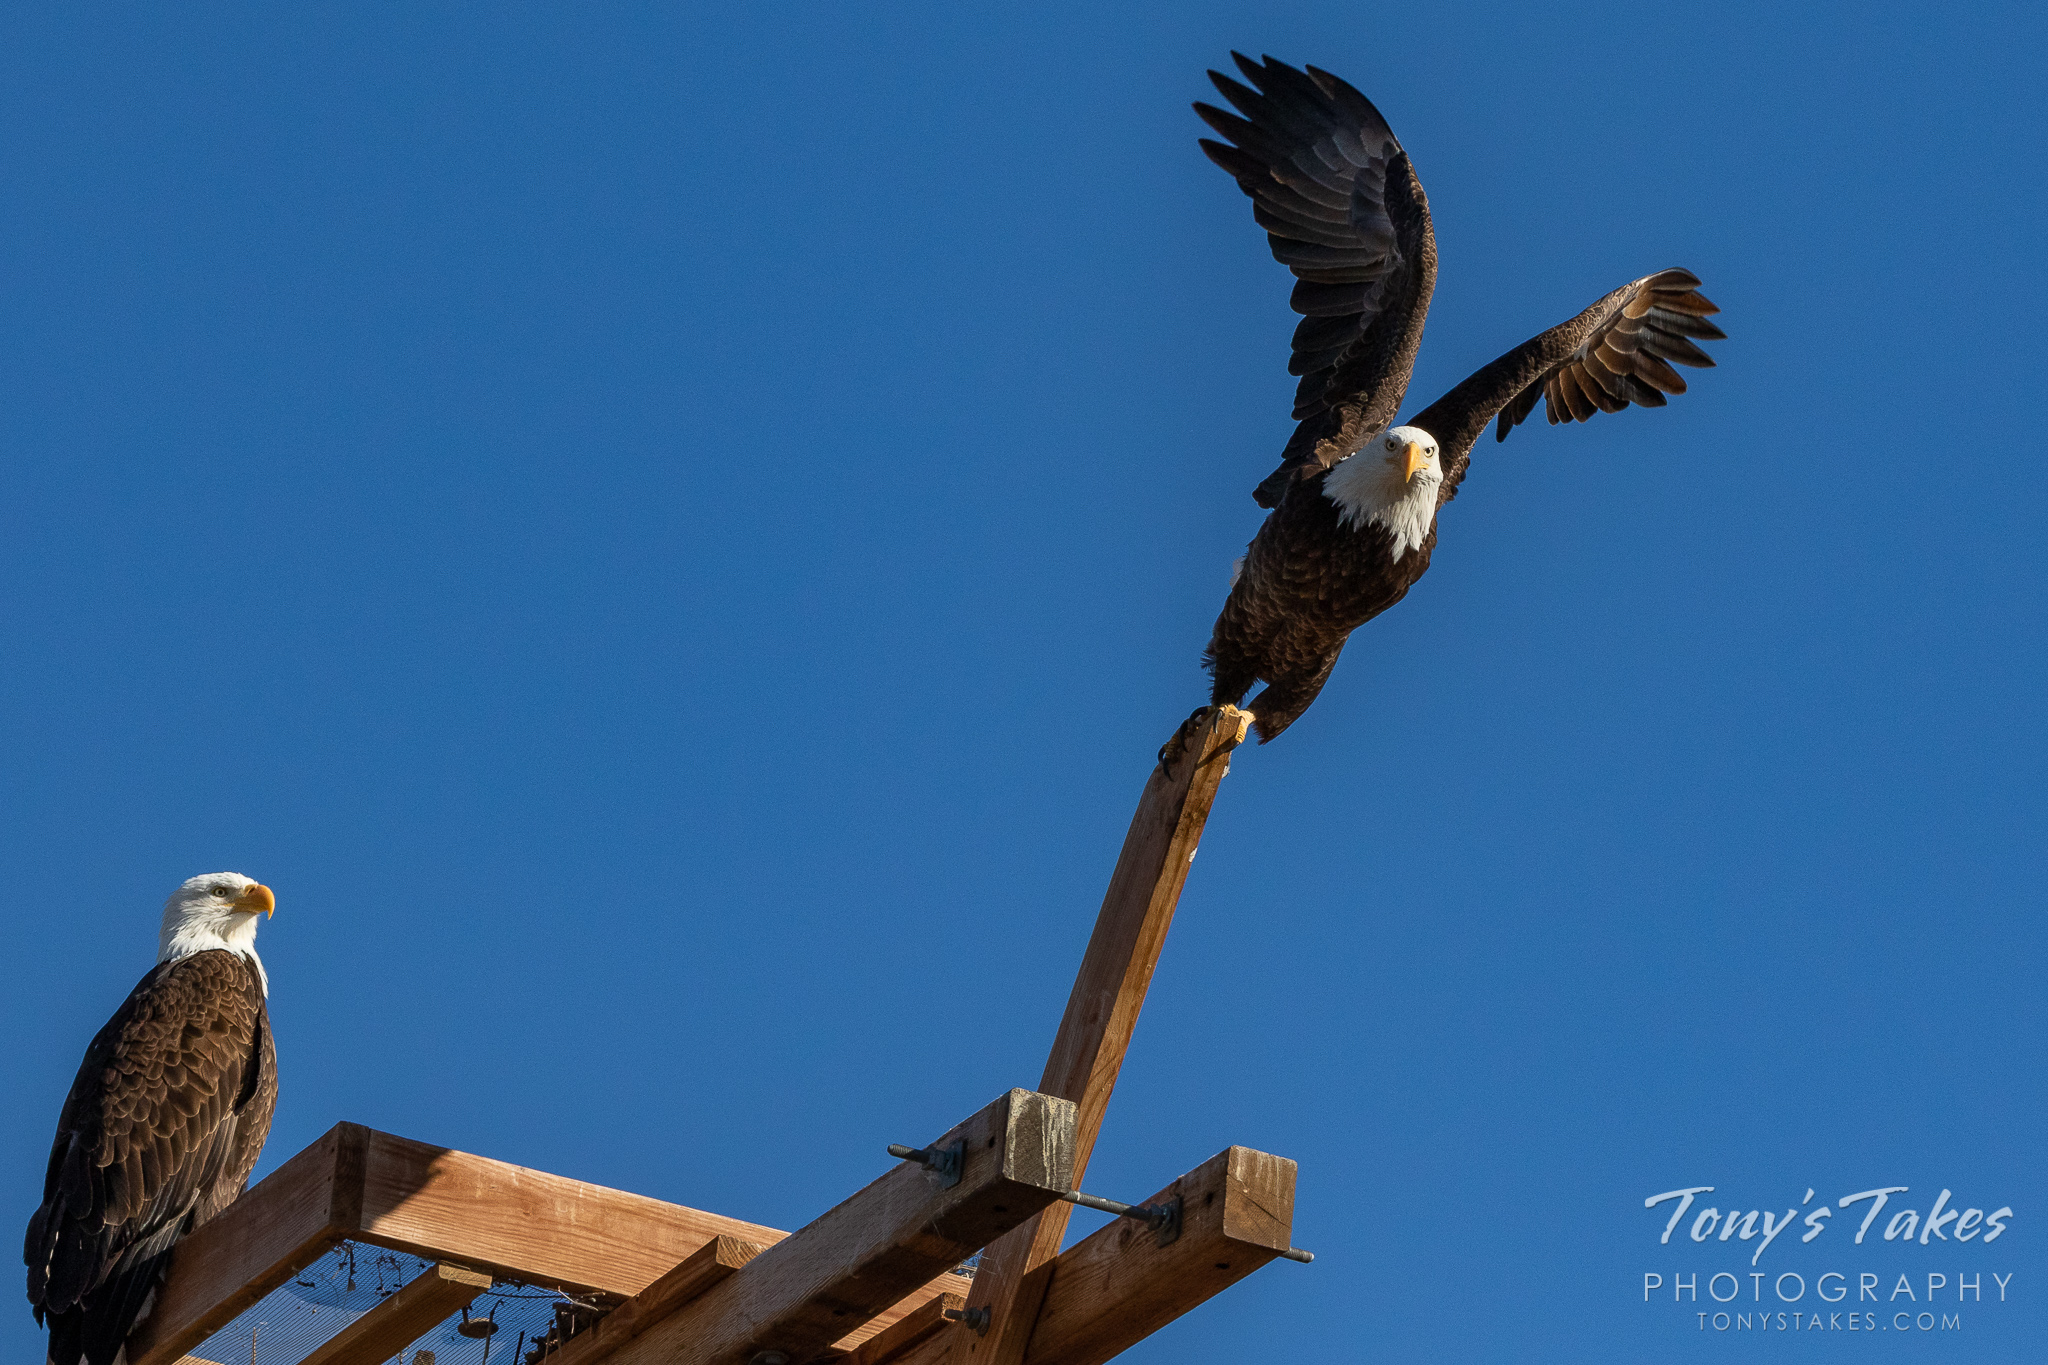 A male bald eagle launches into the sky in Weld County, Colorado while his mate looks on. (© Tony's Takes)